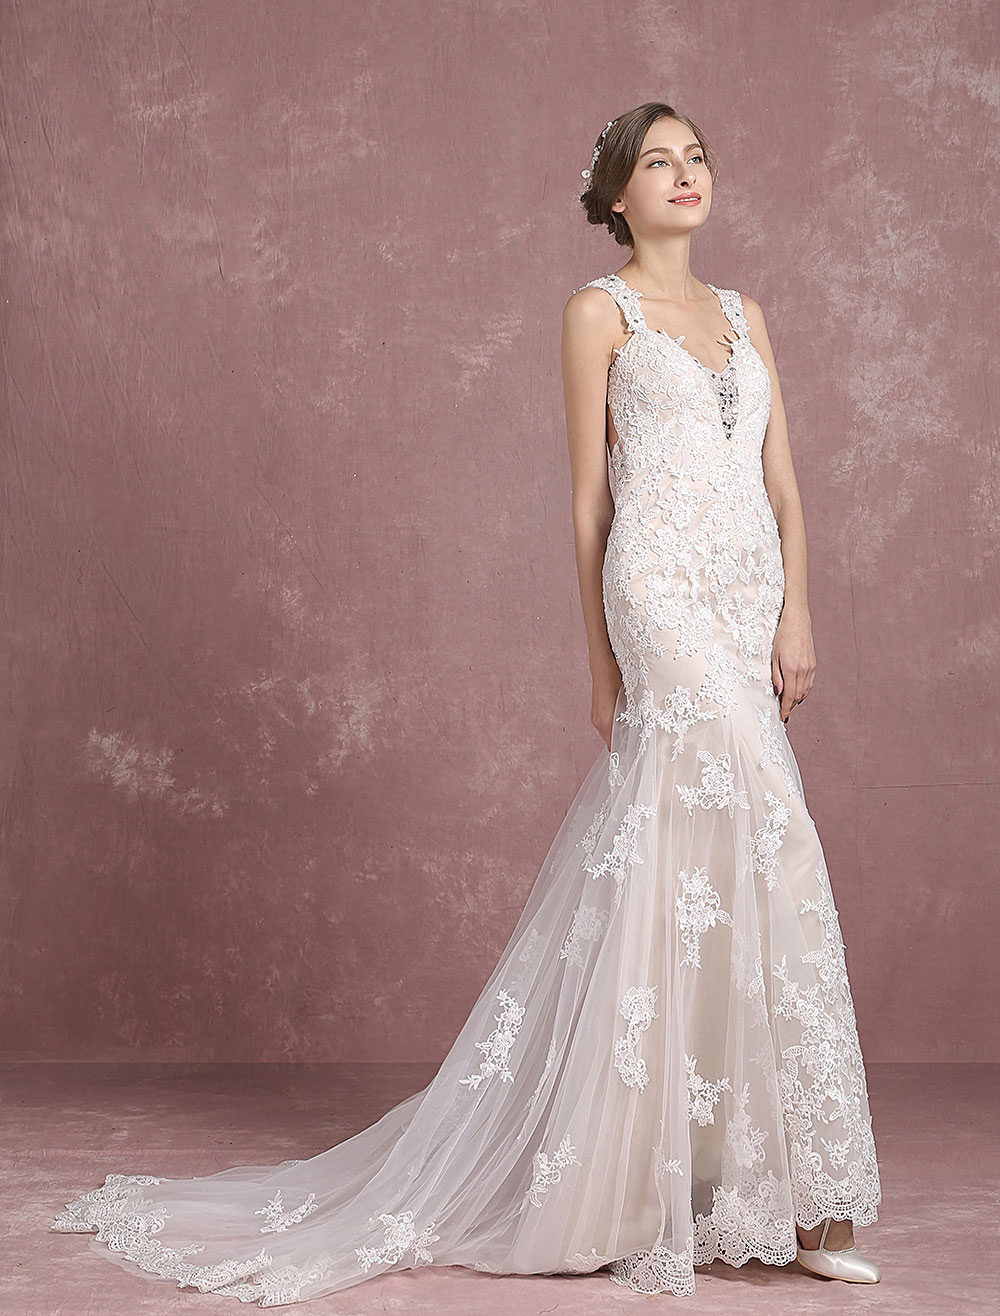 Summer Wedding Dresses 2017 Lace Champagne Straps Mermaid Bridal Gown Backless Beaded Sleeveless